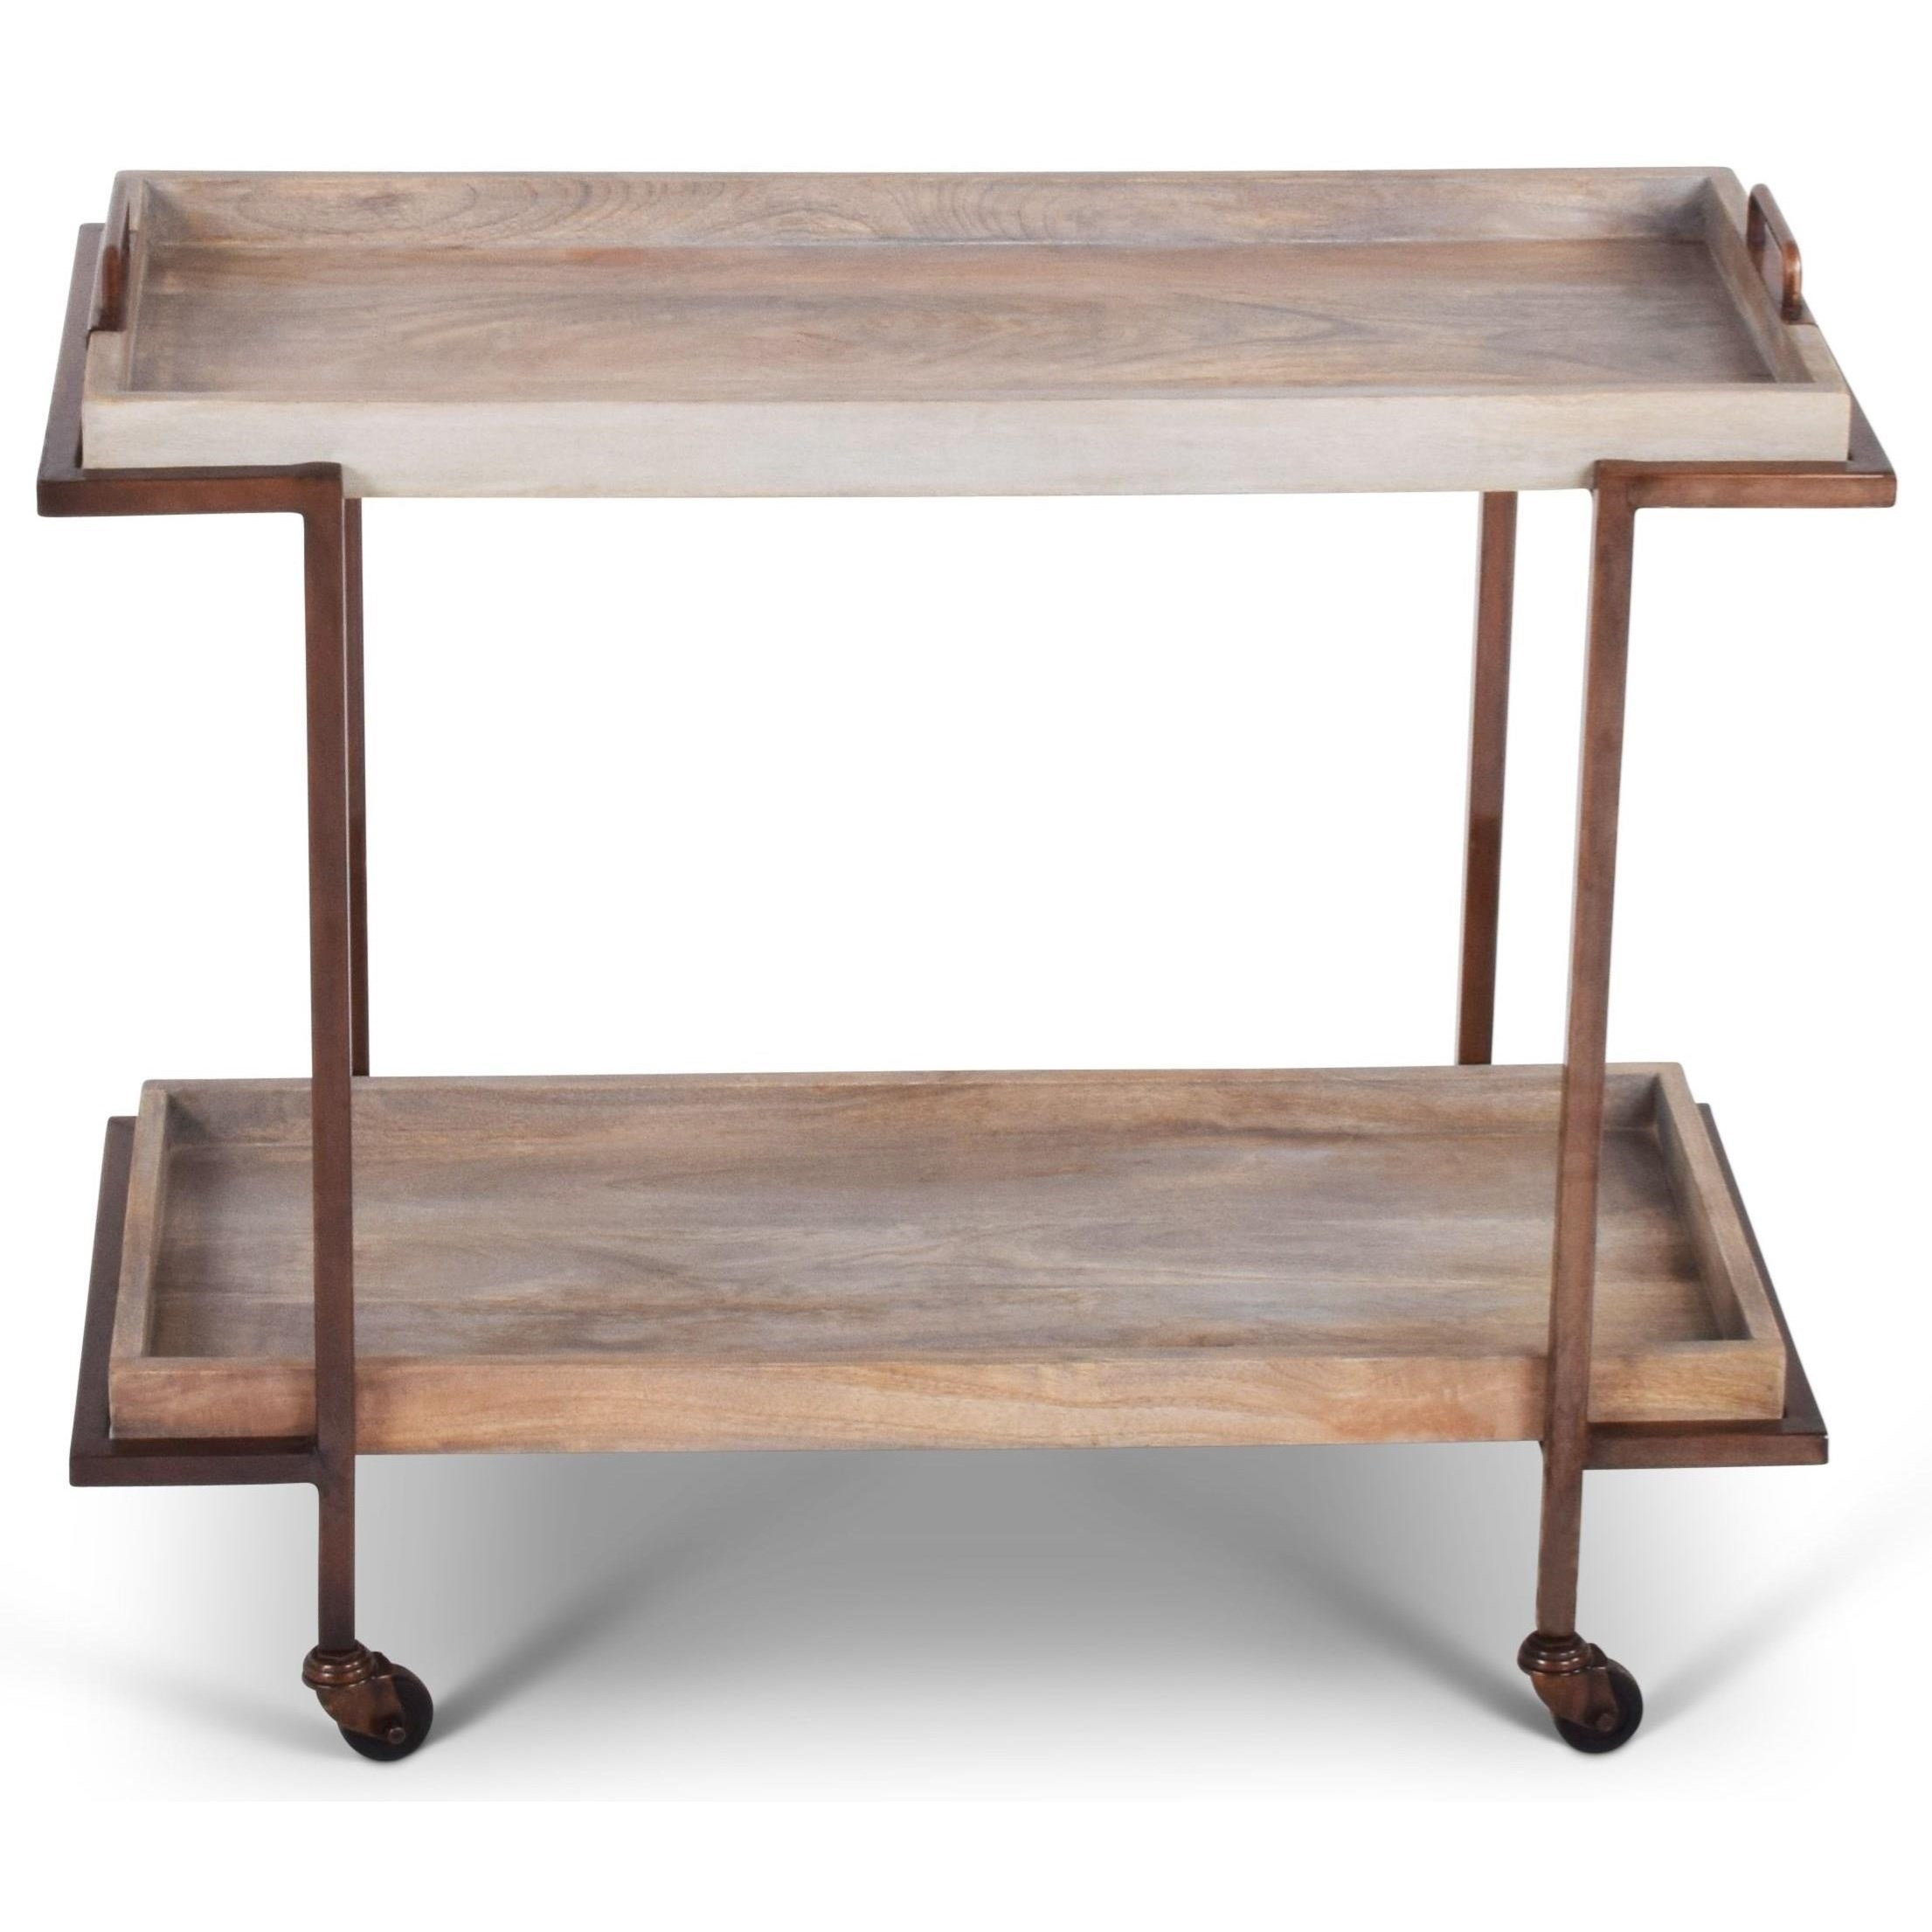 India Accents Conway Cart by Steve Silver at Walker's Furniture